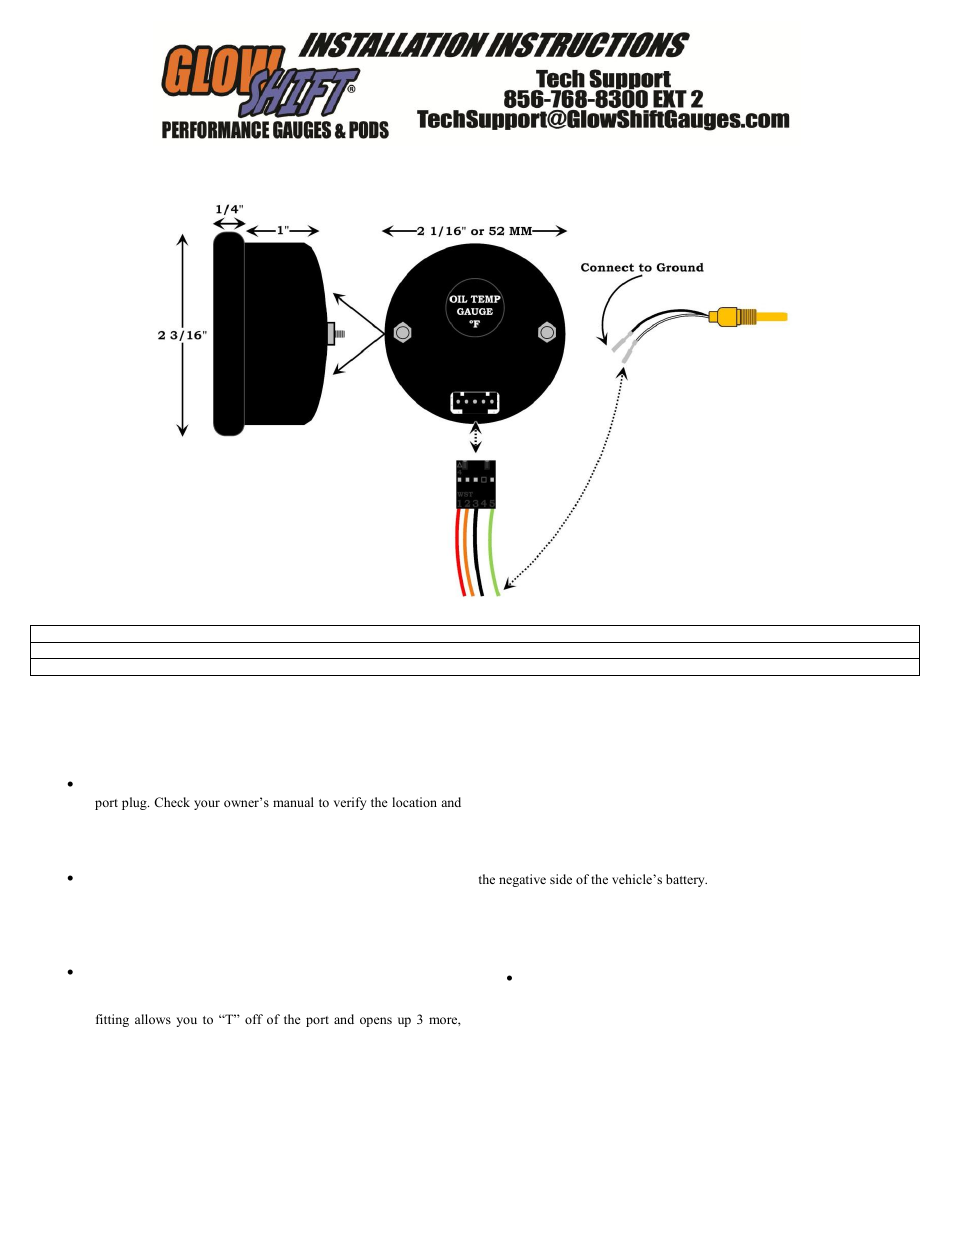 glowshift digital series oil temperature gauge user manual 3 pages rh manualsdir com